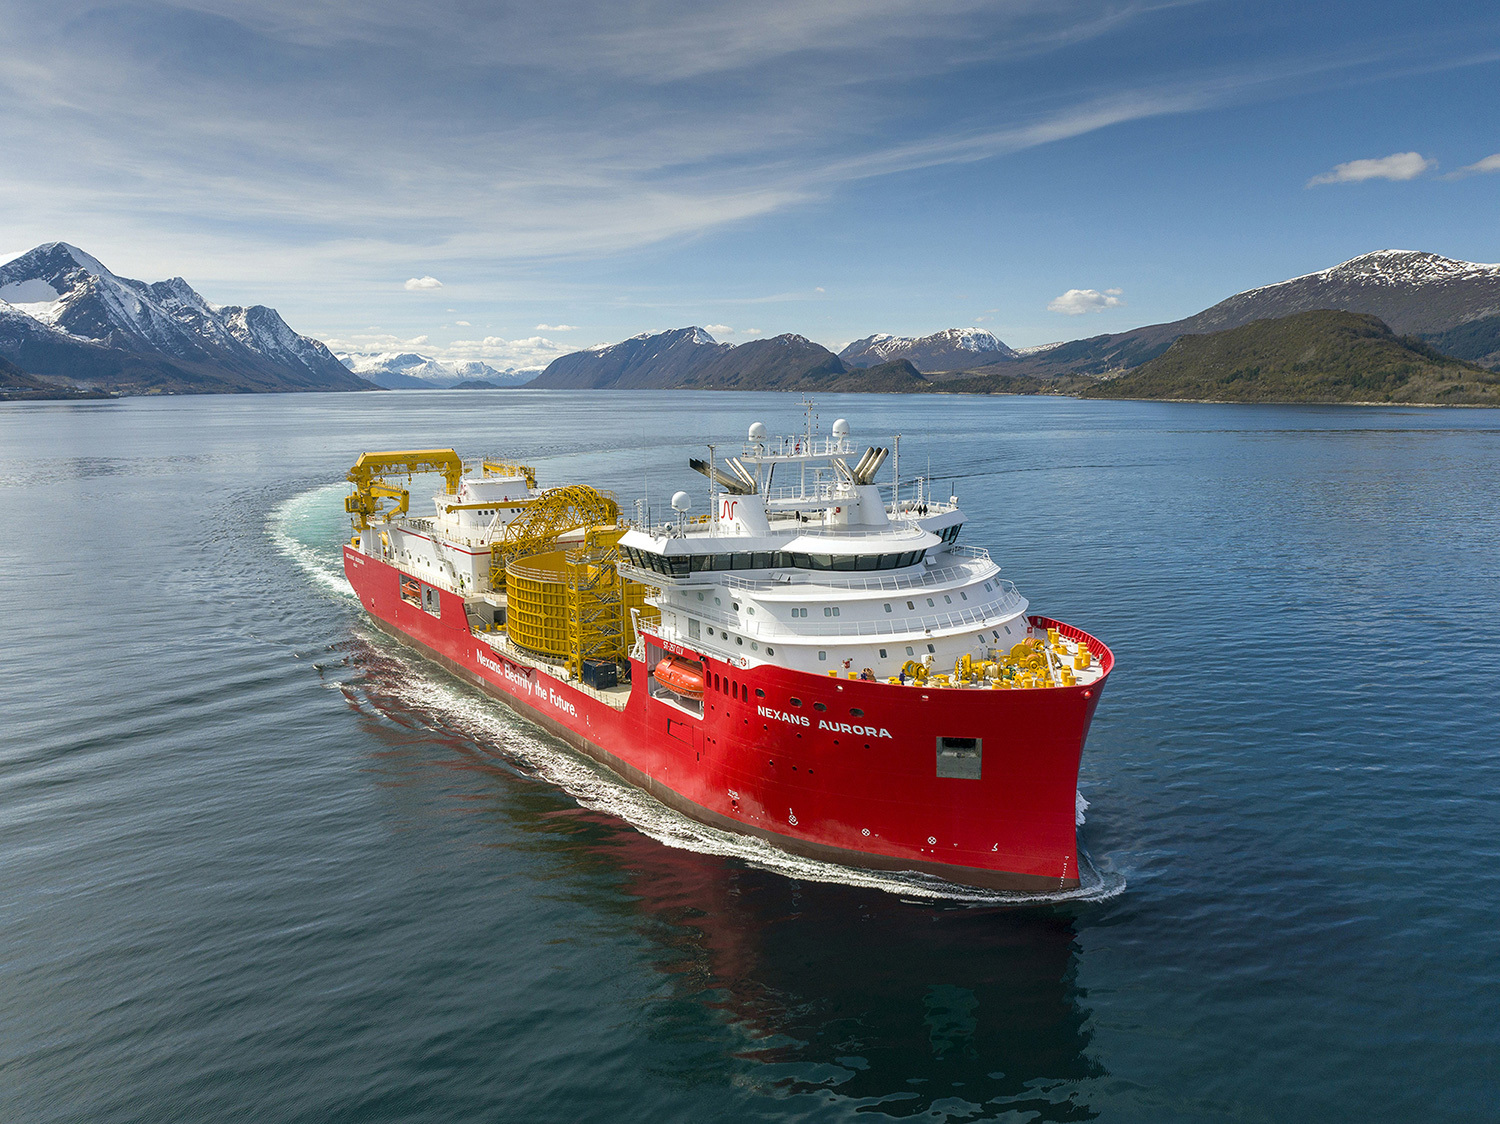 'Nexans Aurora' is a state-of-the-art cable-laying vessel for electrification of the future and is equipped with state-of-the-art equipment for transport and laying of cable and umbilical, including bundling, cable protection and splicing. Photo: Per Eide Studio.